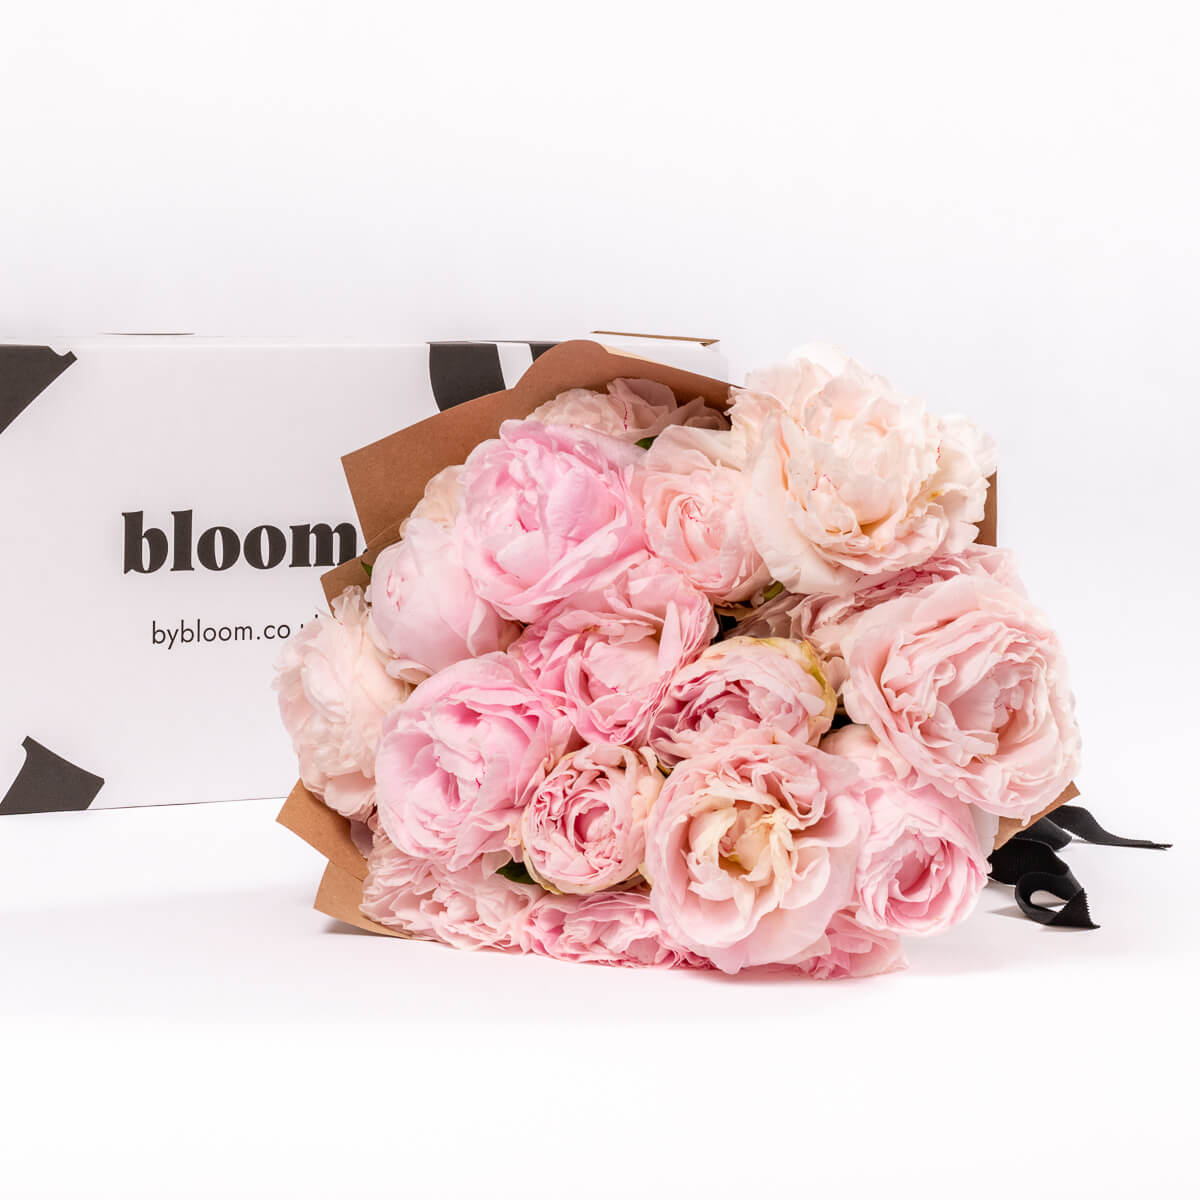 Bloom Flower Delivery | Mother's Choice Peony